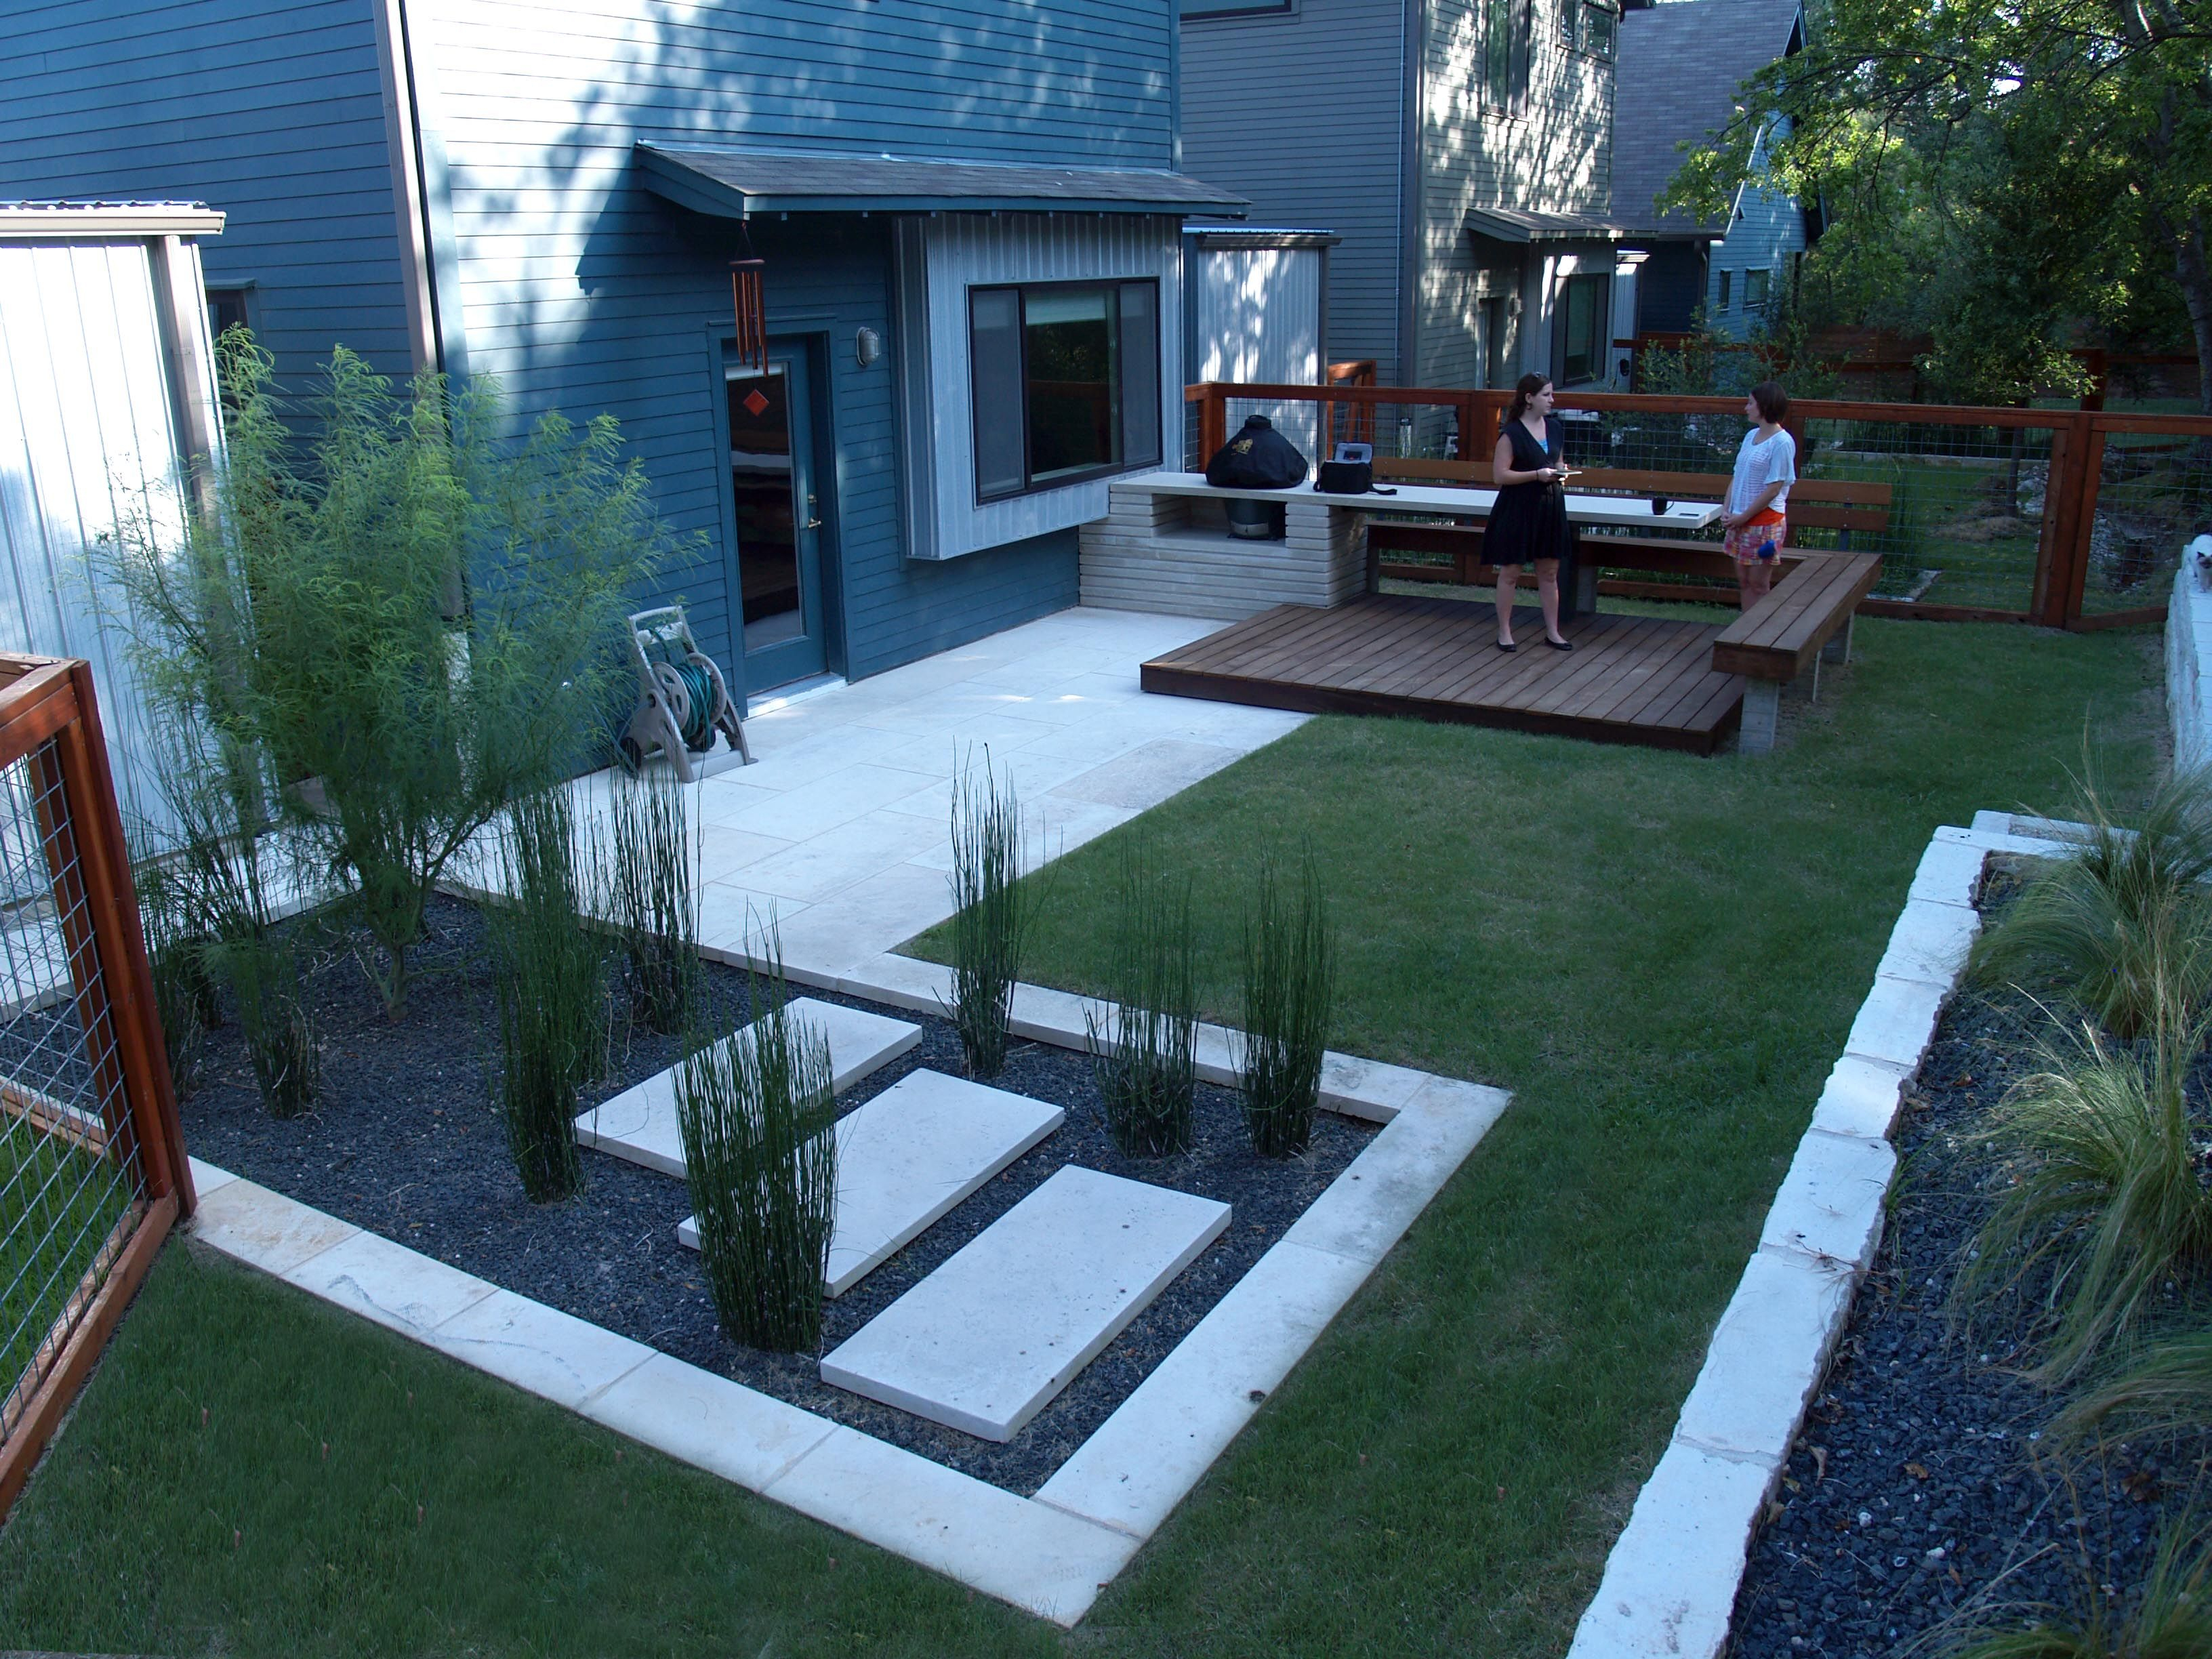 Backyard Design With Kitchen Dining And Living Modern Small Backyard throughout 10 Clever Initiatives of How to Build Contemporary Backyard Ideas